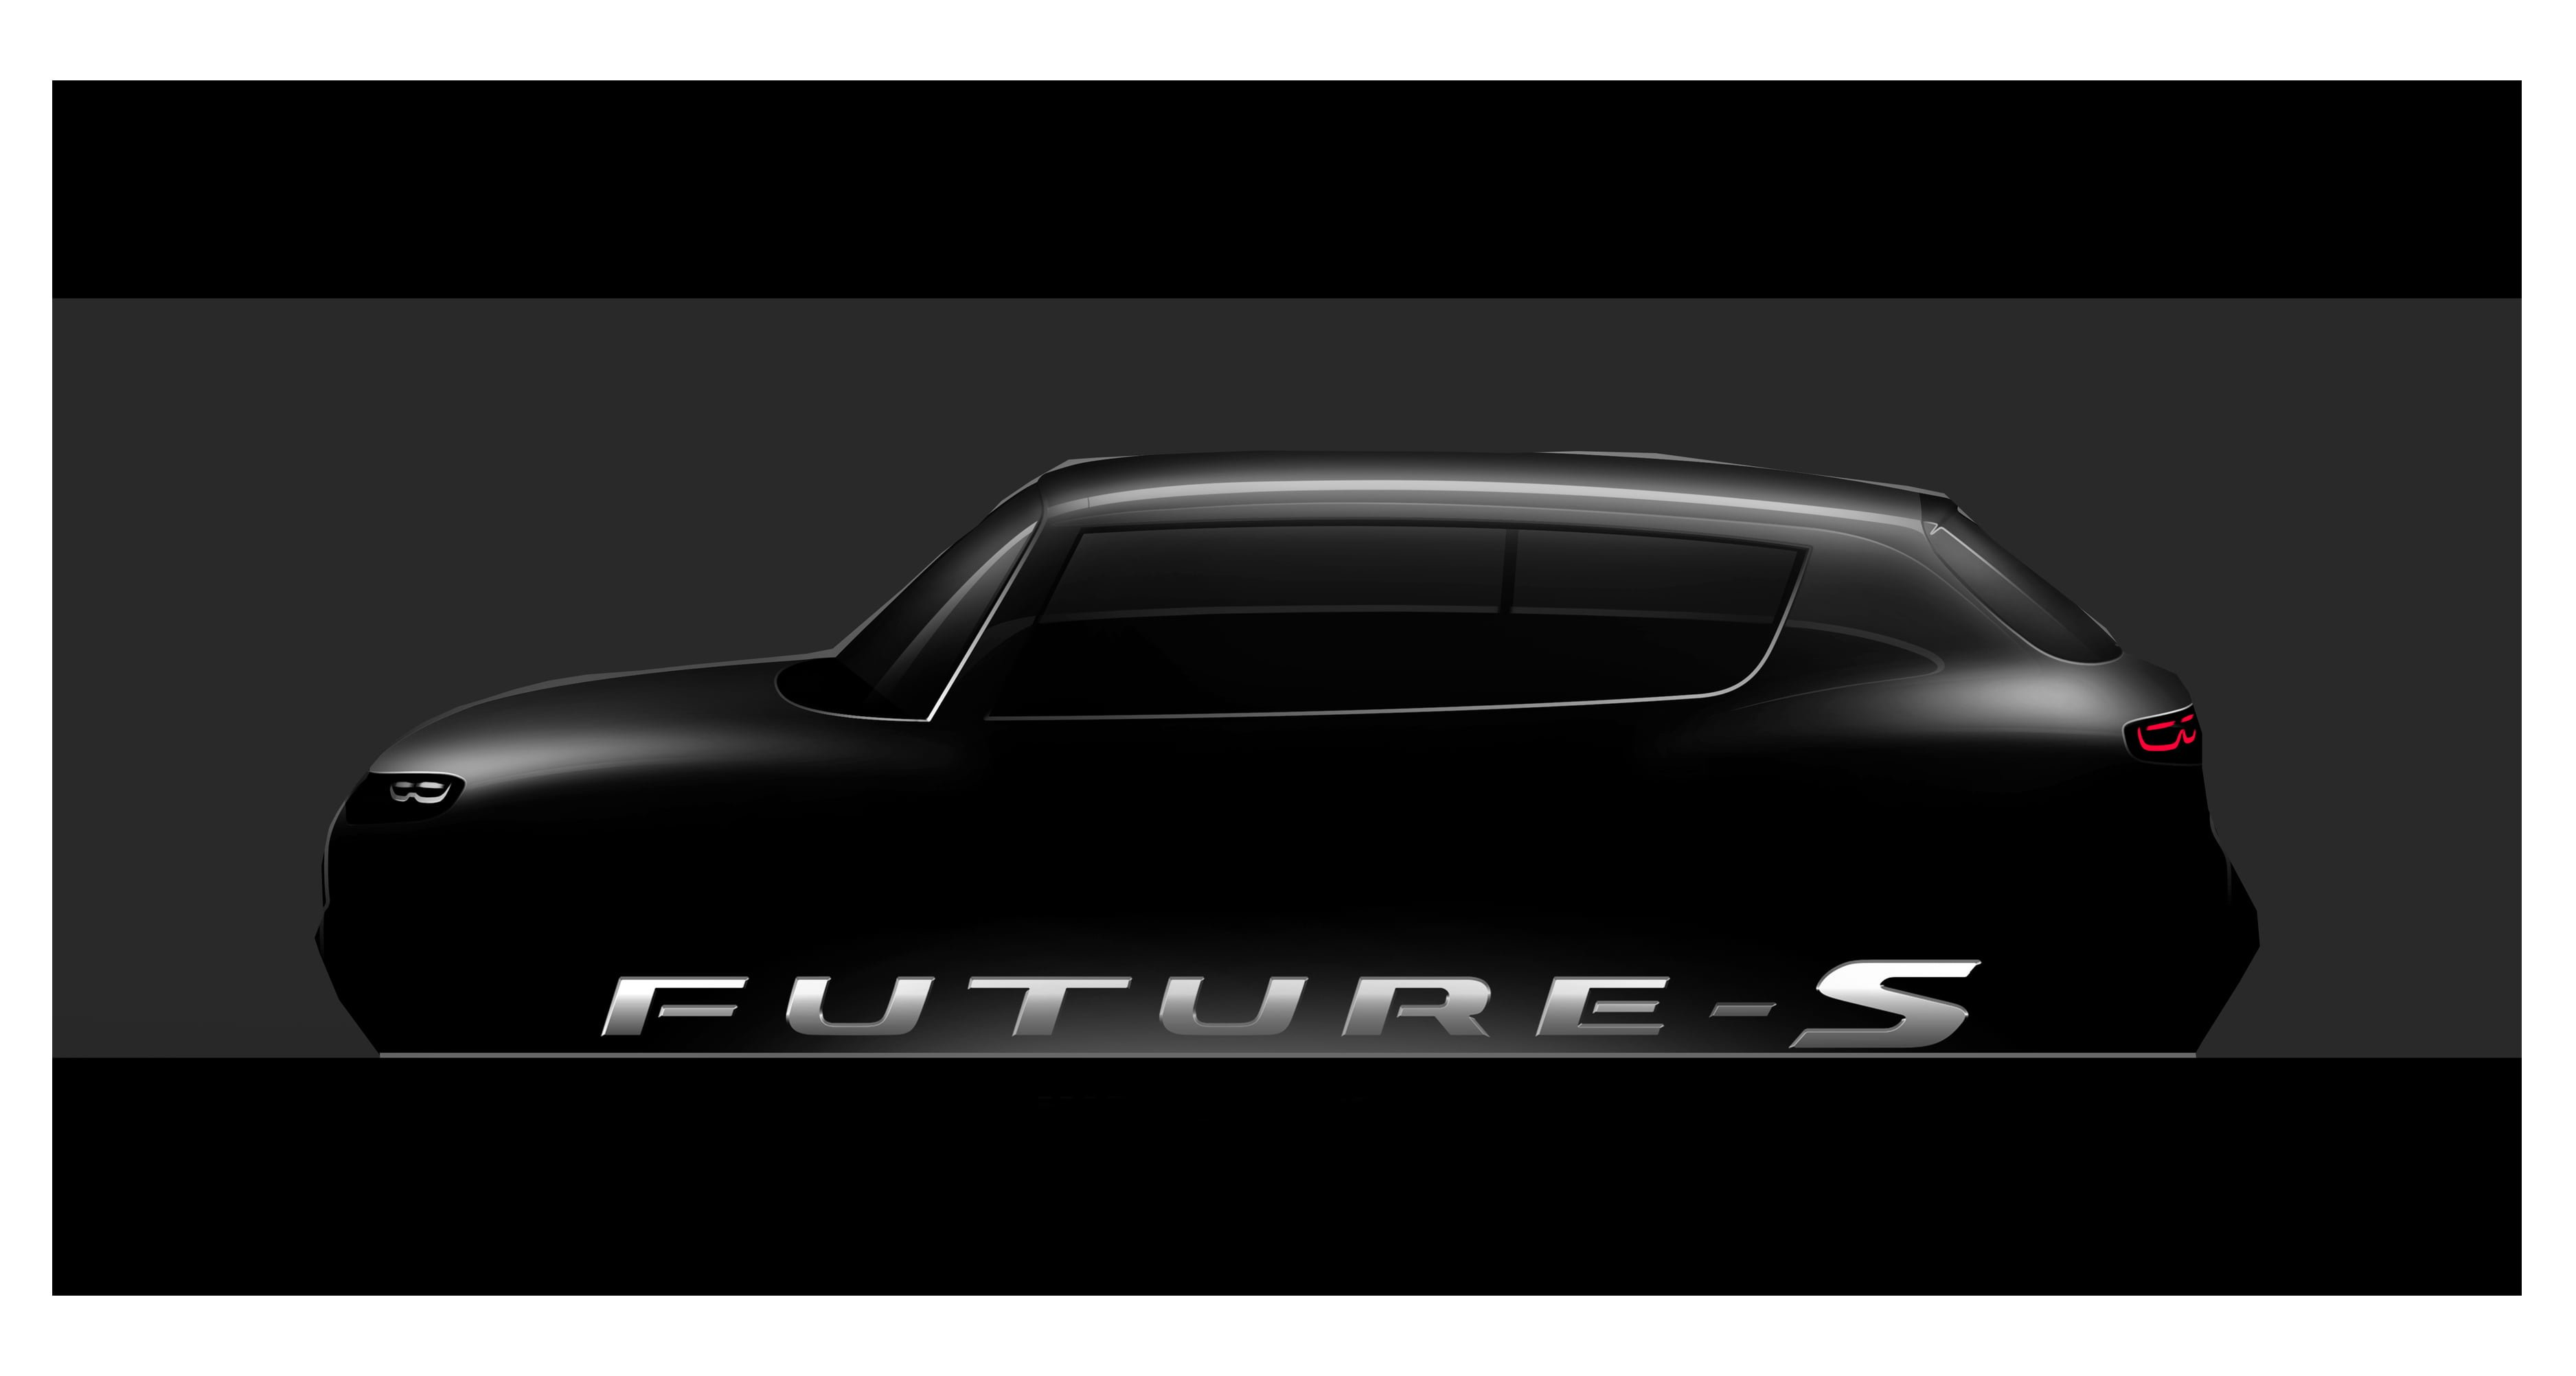 New Maruti Future S Concept Likely To Kwid Rival